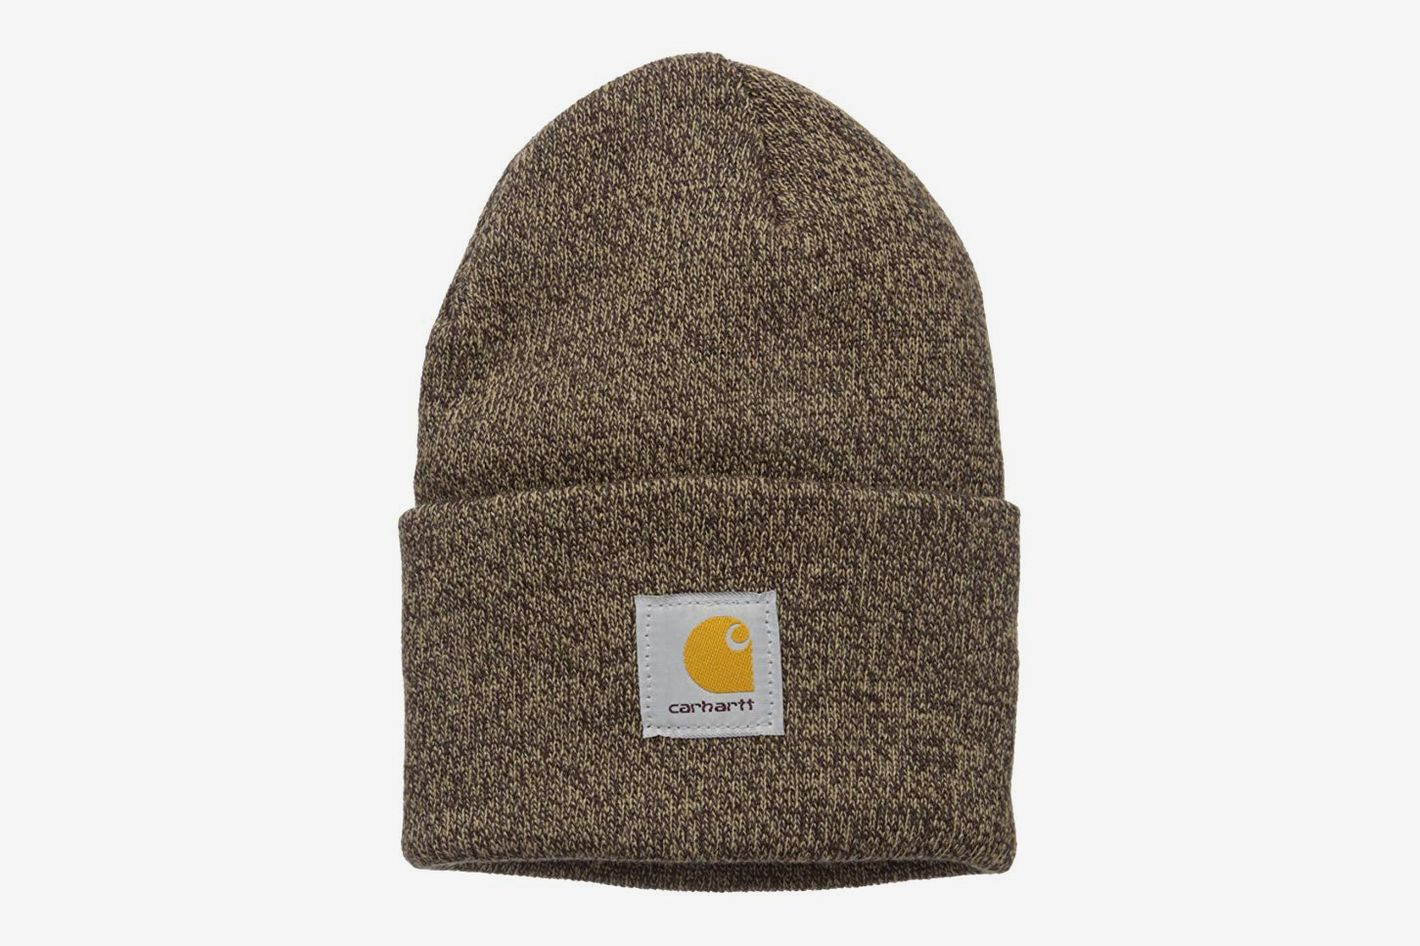 d3675f54cd8 Carhartt Beanies Are Everywhere. Here s Why.